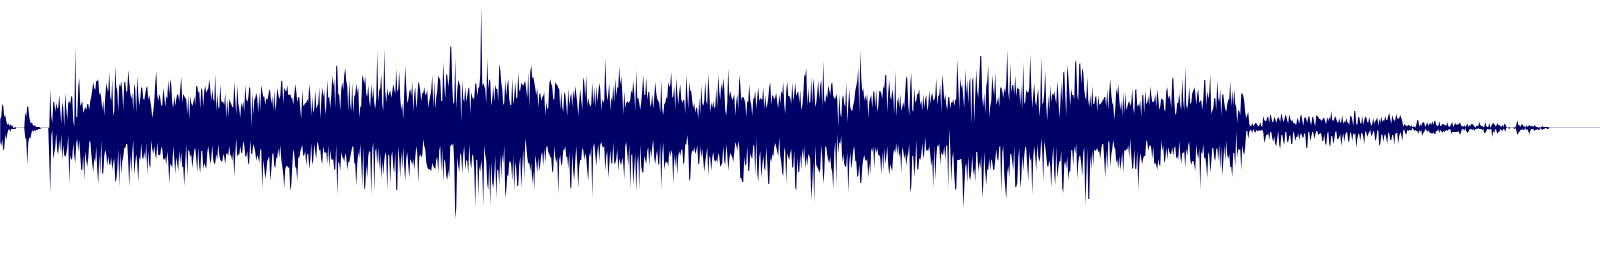 waveform of track #146767